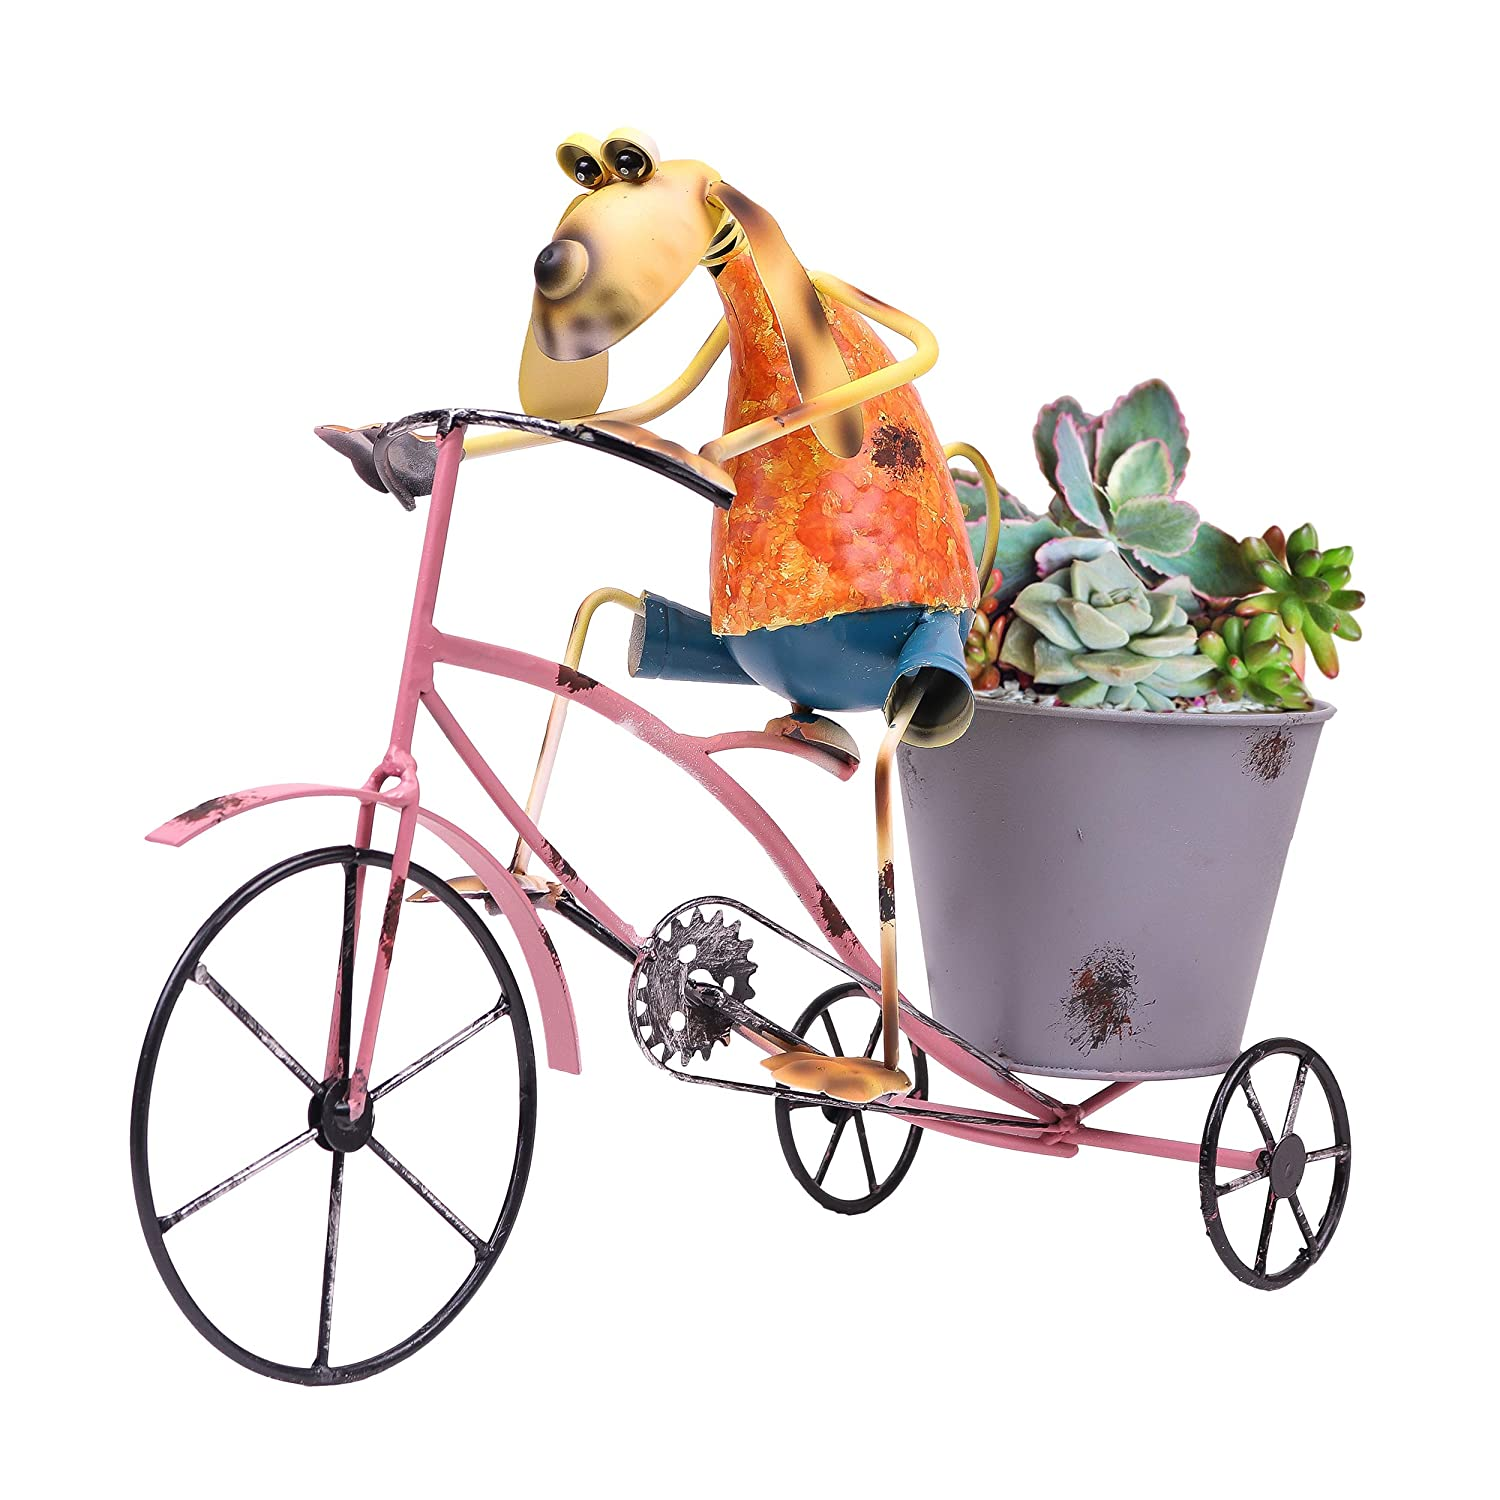 Teresas Collections 16 Metal Garden Decorations Dog Statues and Figurines with Plant Flower Pot for Outdoor Patio Yard Decorations